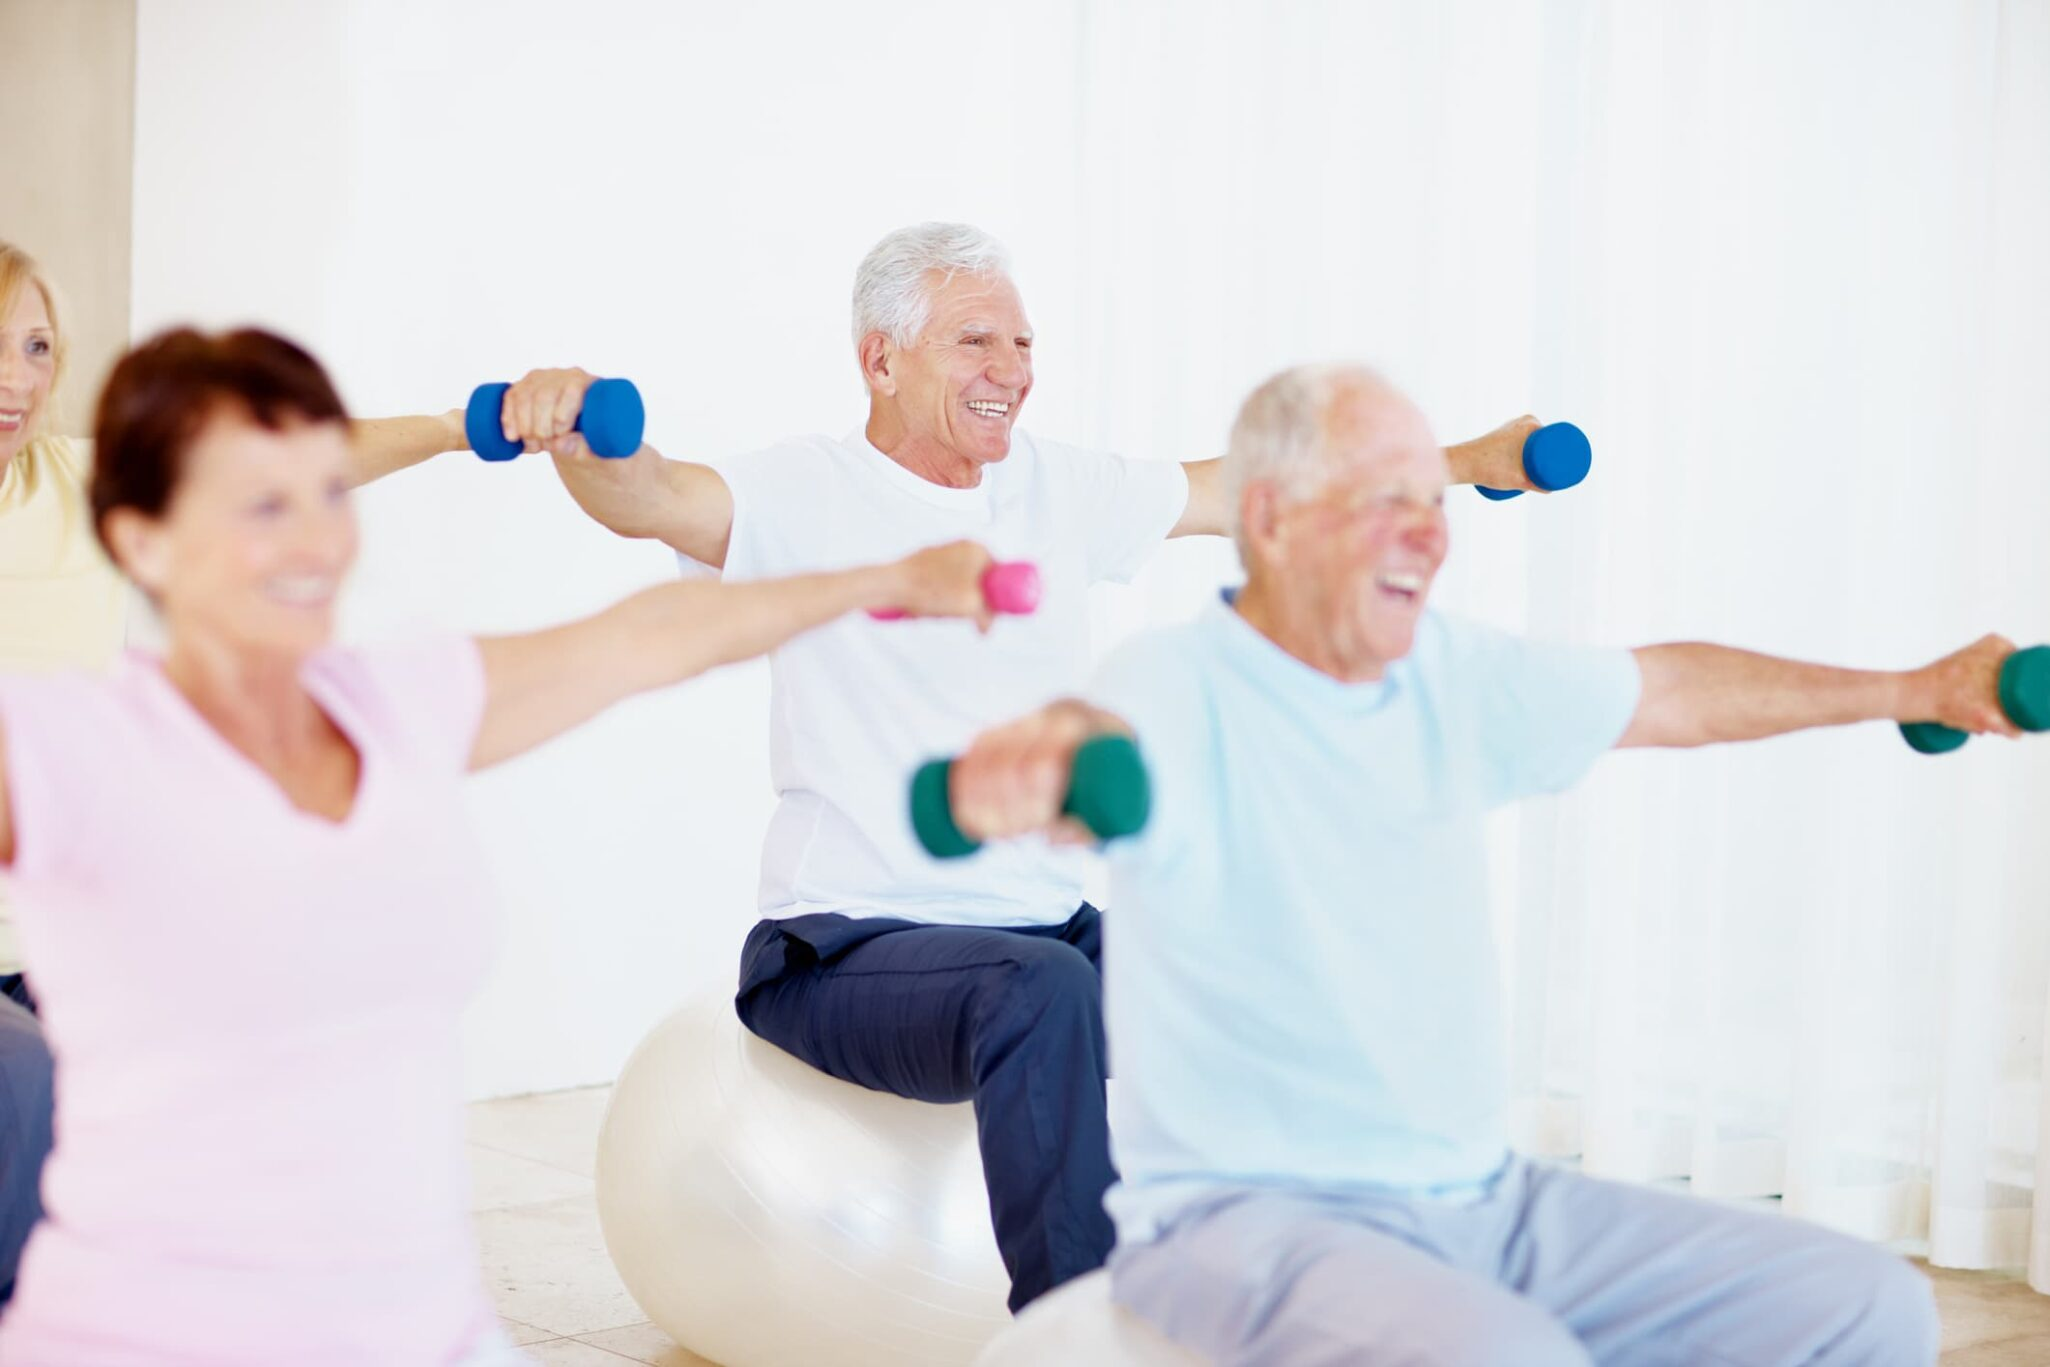 Group of older adults smiling while lifting weights in a strength training class.